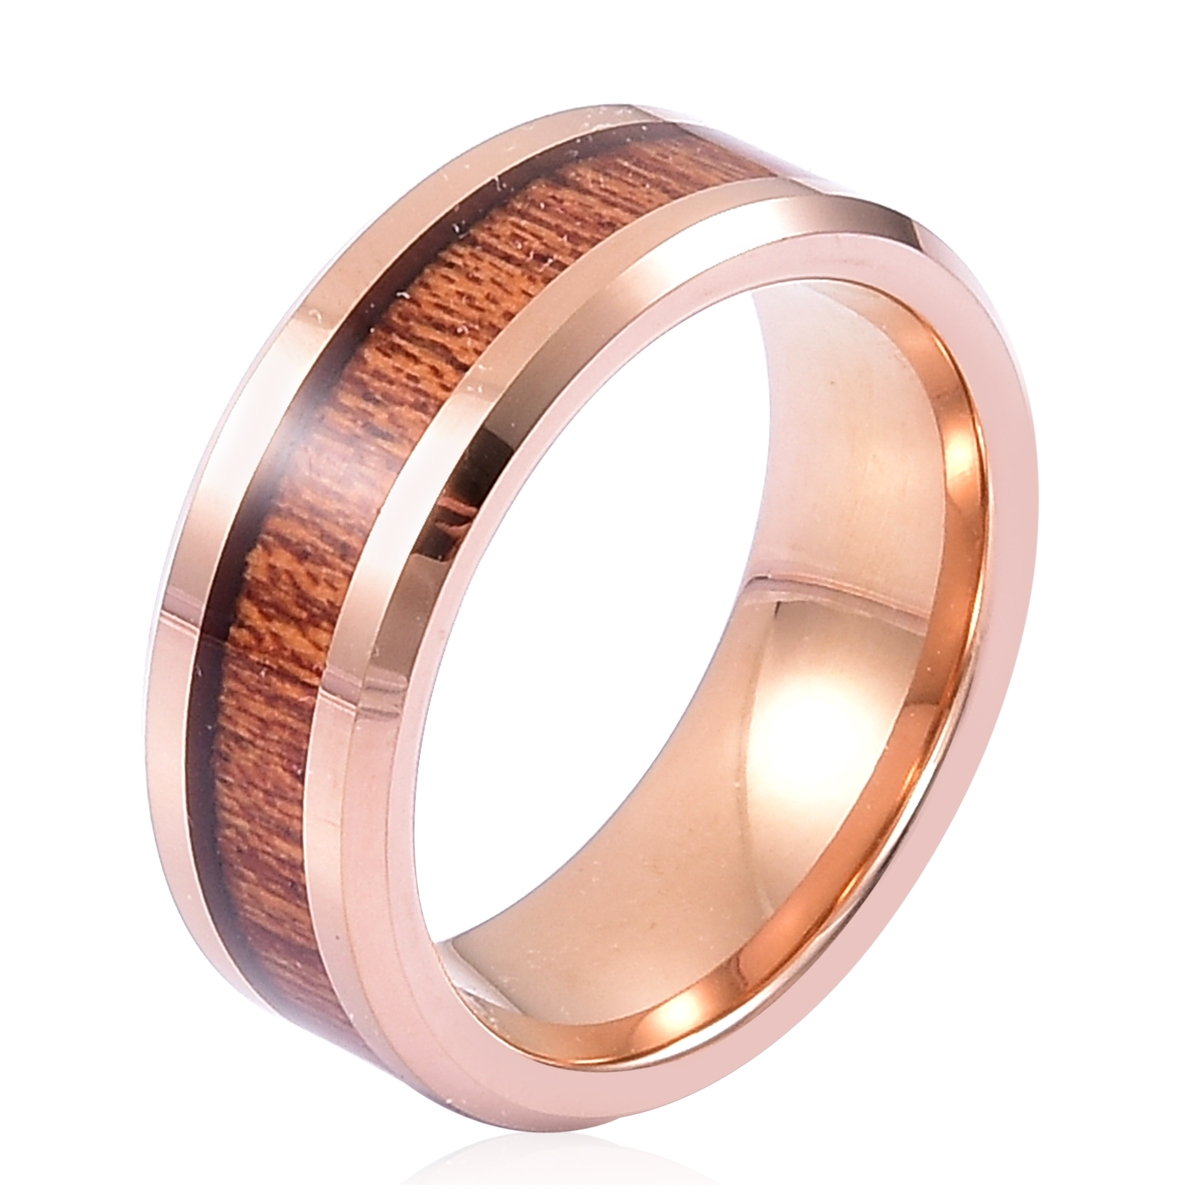 Shop eBay for great deals on Rings Size 8. You'll find new or used products in Rings Size 8 on eBay. Free shipping on selected items.